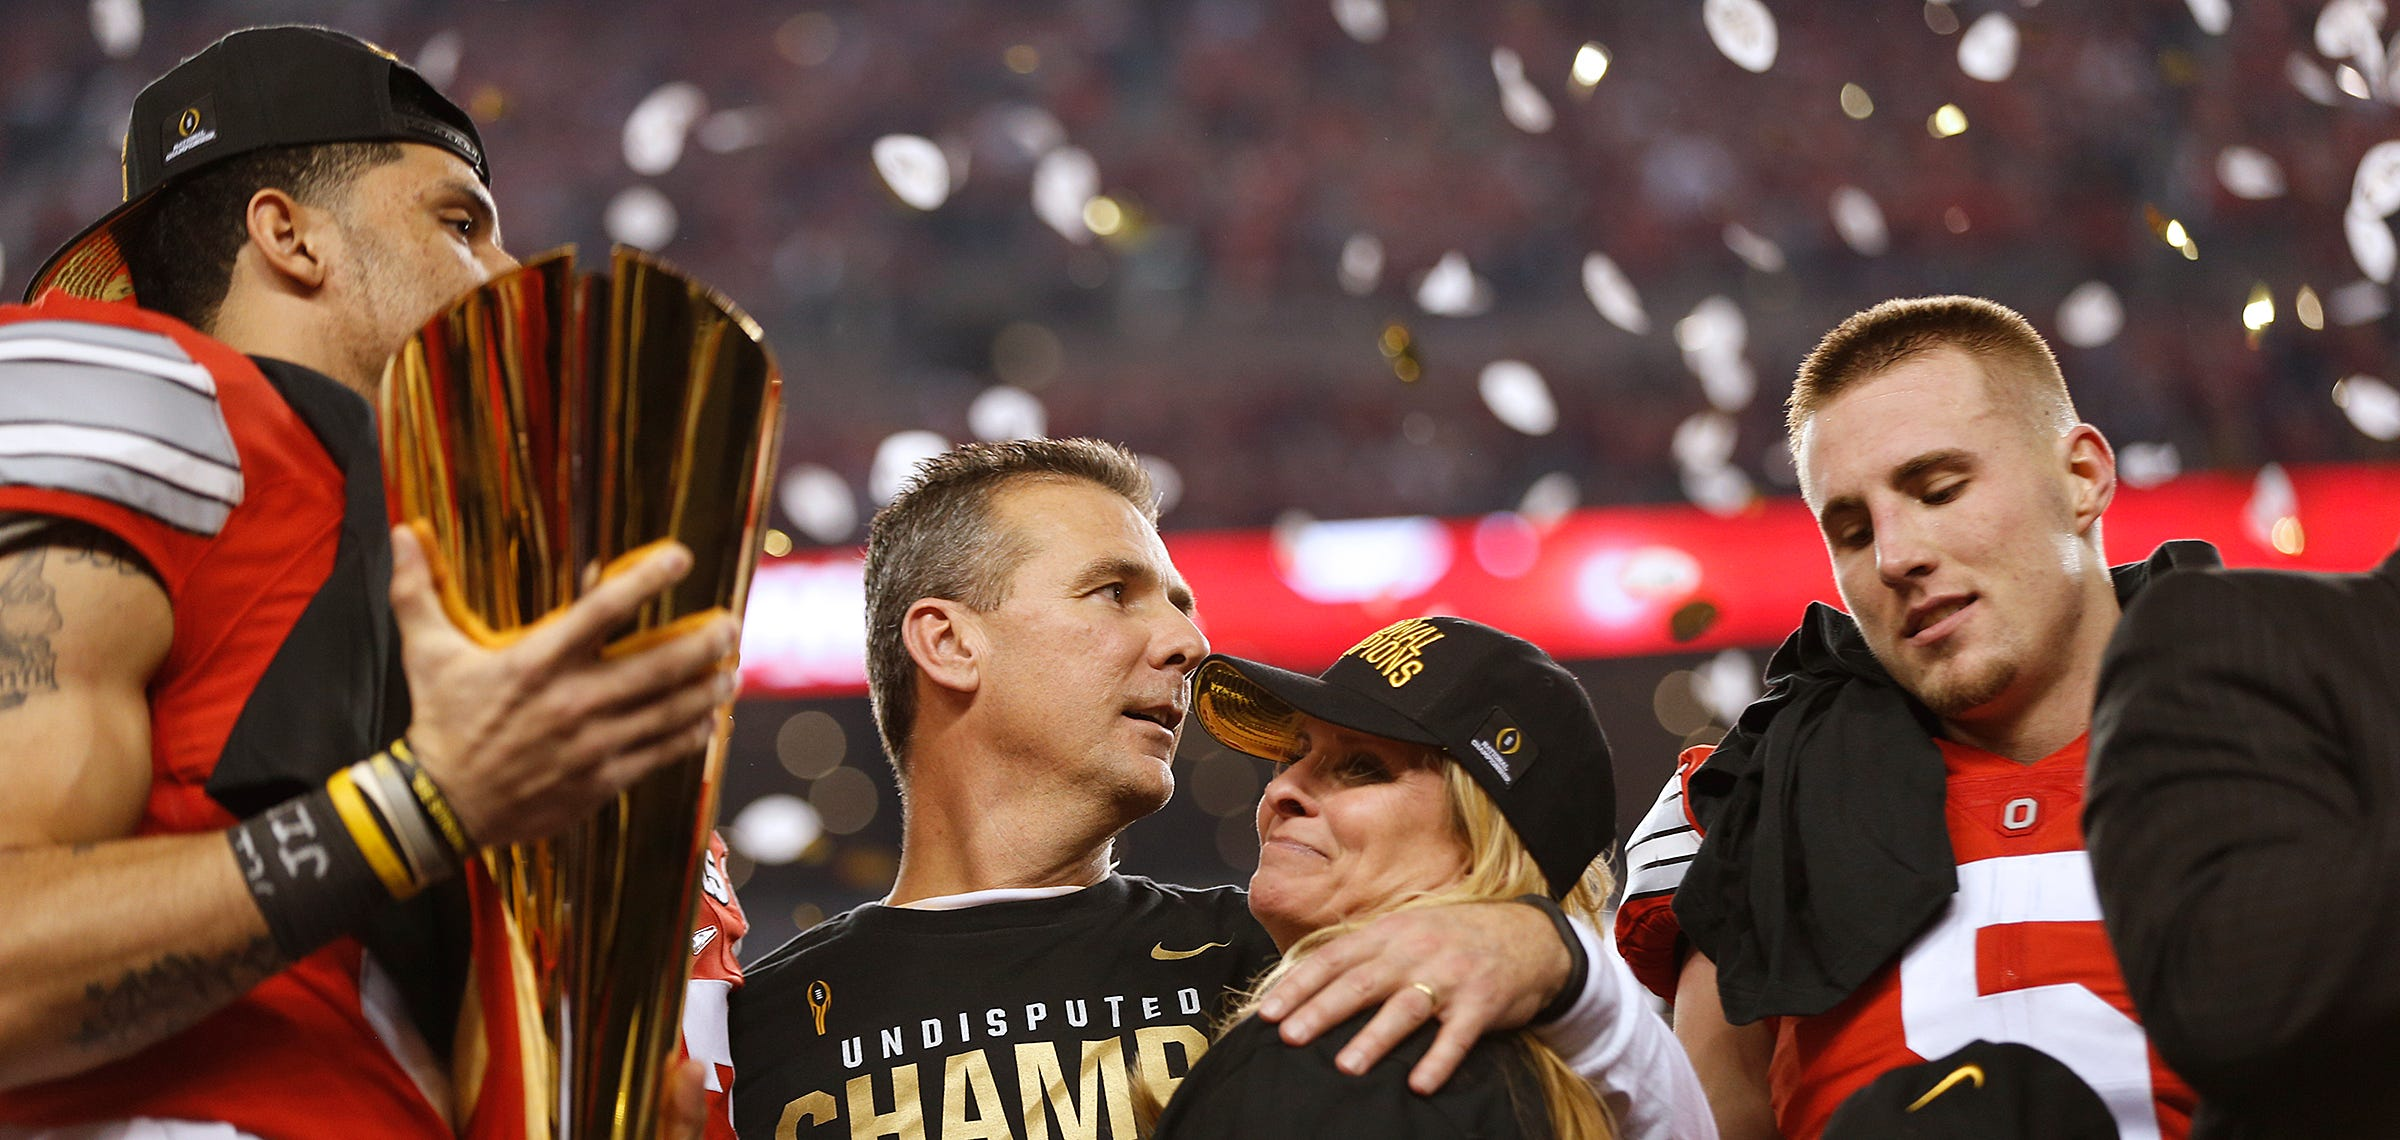 Urban Meyer celebrates with his wife Shelley after the College Football Playoff National Championship between the Ohio State Buckeyes and the Oregon Ducks at AT&T Stadium in Arlington, Texas, on Jan. 12, 2015.